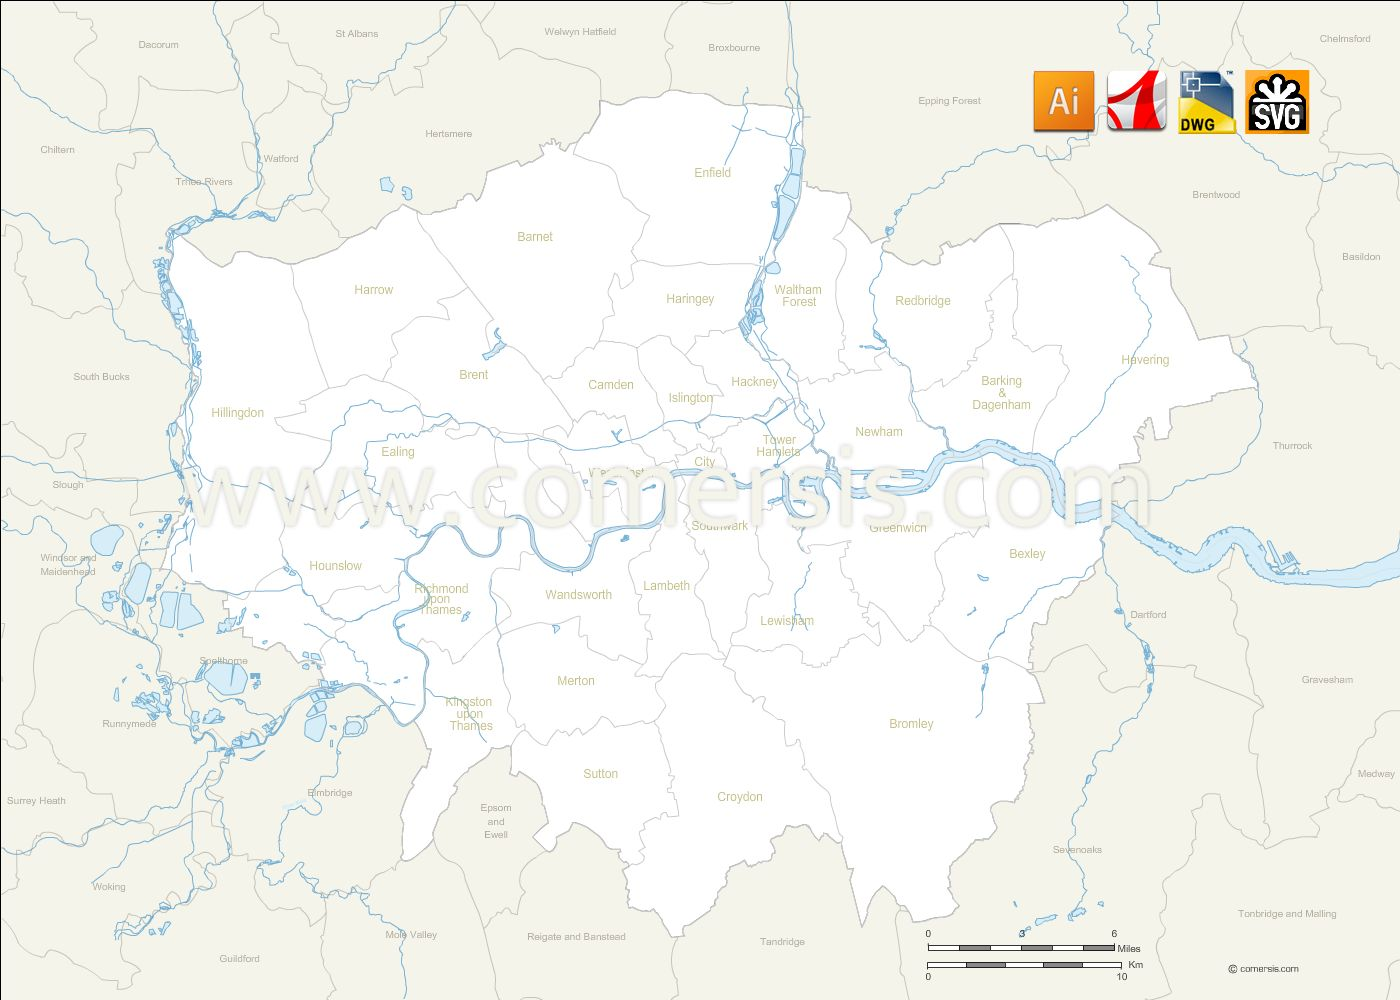 Greater London Vector Map With Borough Boundaries And Names - London map svg